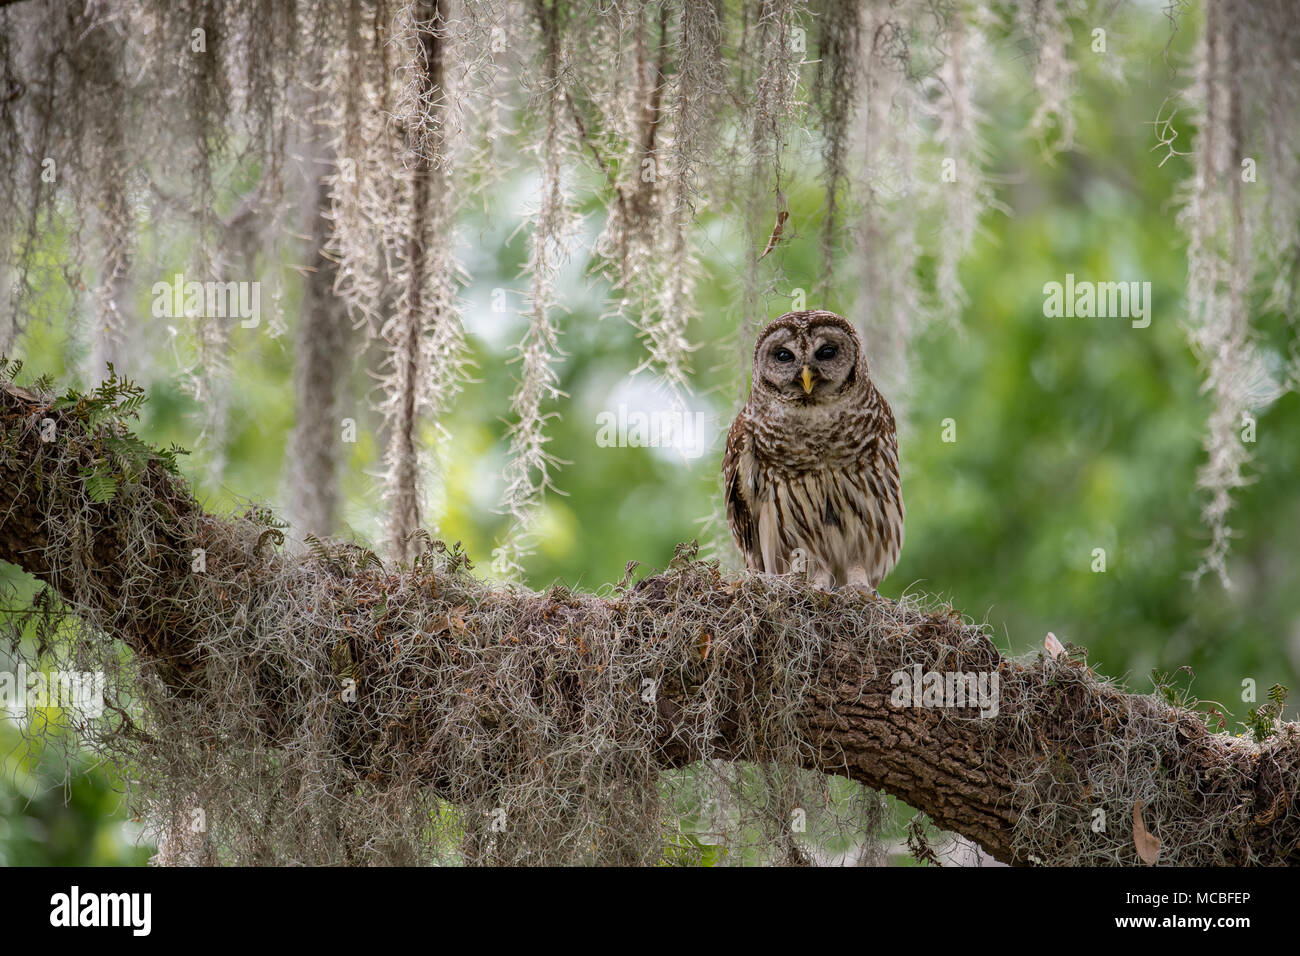 Barred Owl in Florida - Stock Image